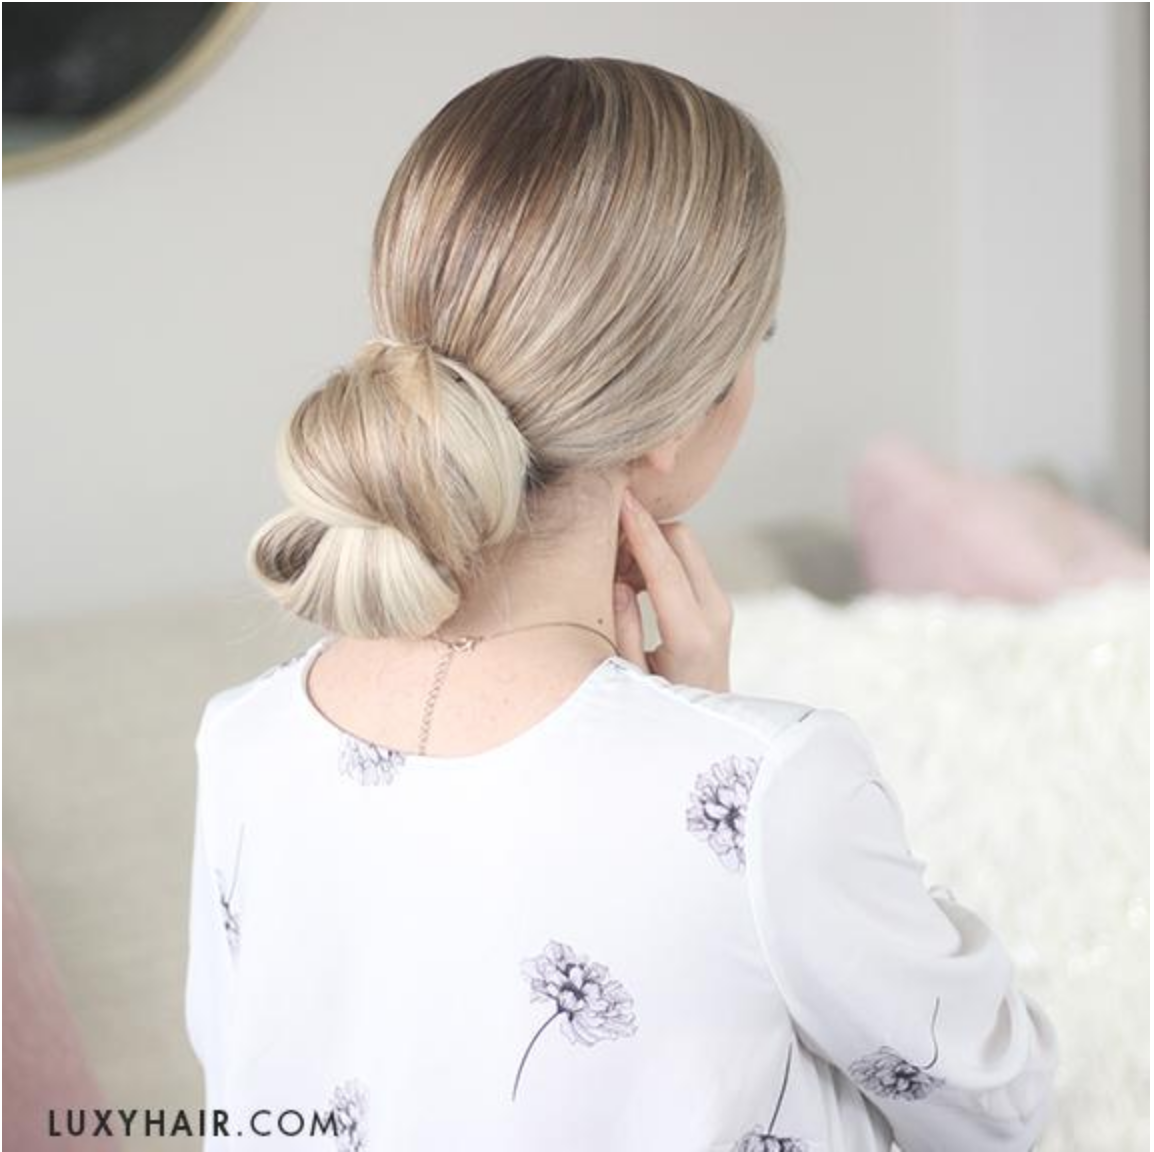 This pulled back and sophisticated bun is perfect for formal evening